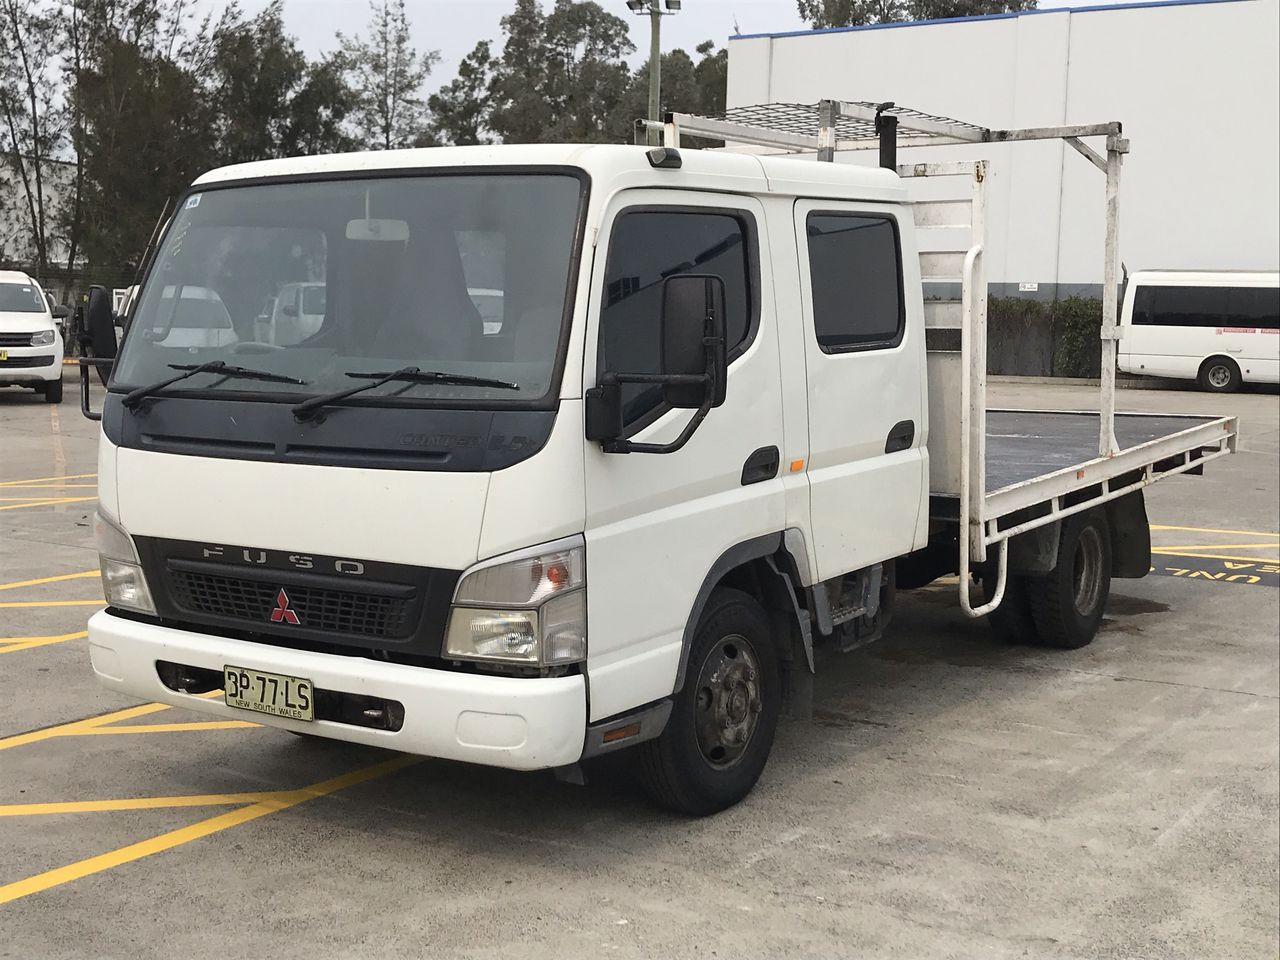 2007 Mitsubishi Canter Dual Cab, Cab Chassis Manual 7 Seat Truck